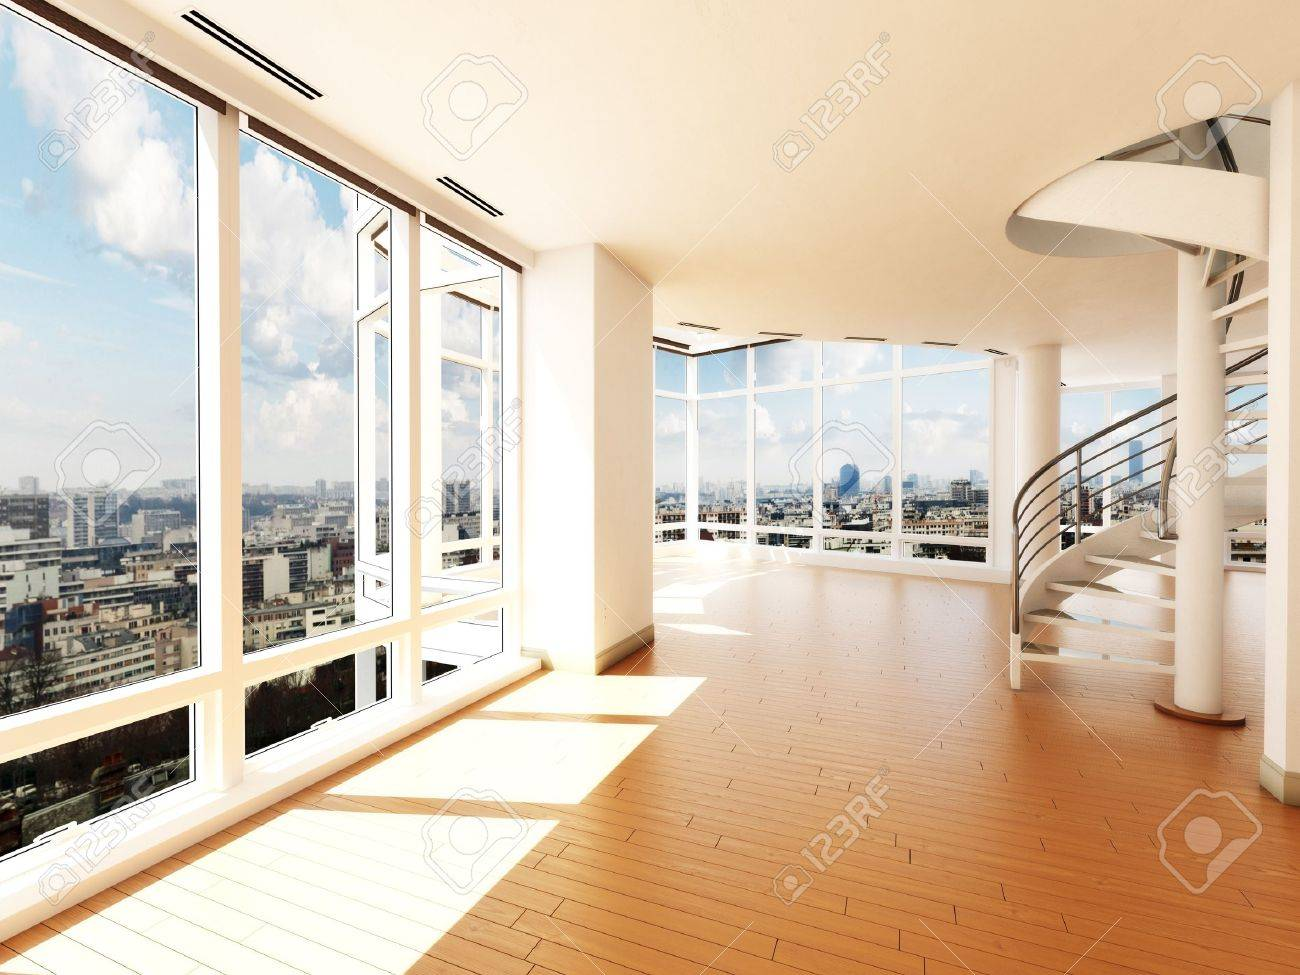 Modern interior with stair s overlooking a city Stock Photo - 20163786